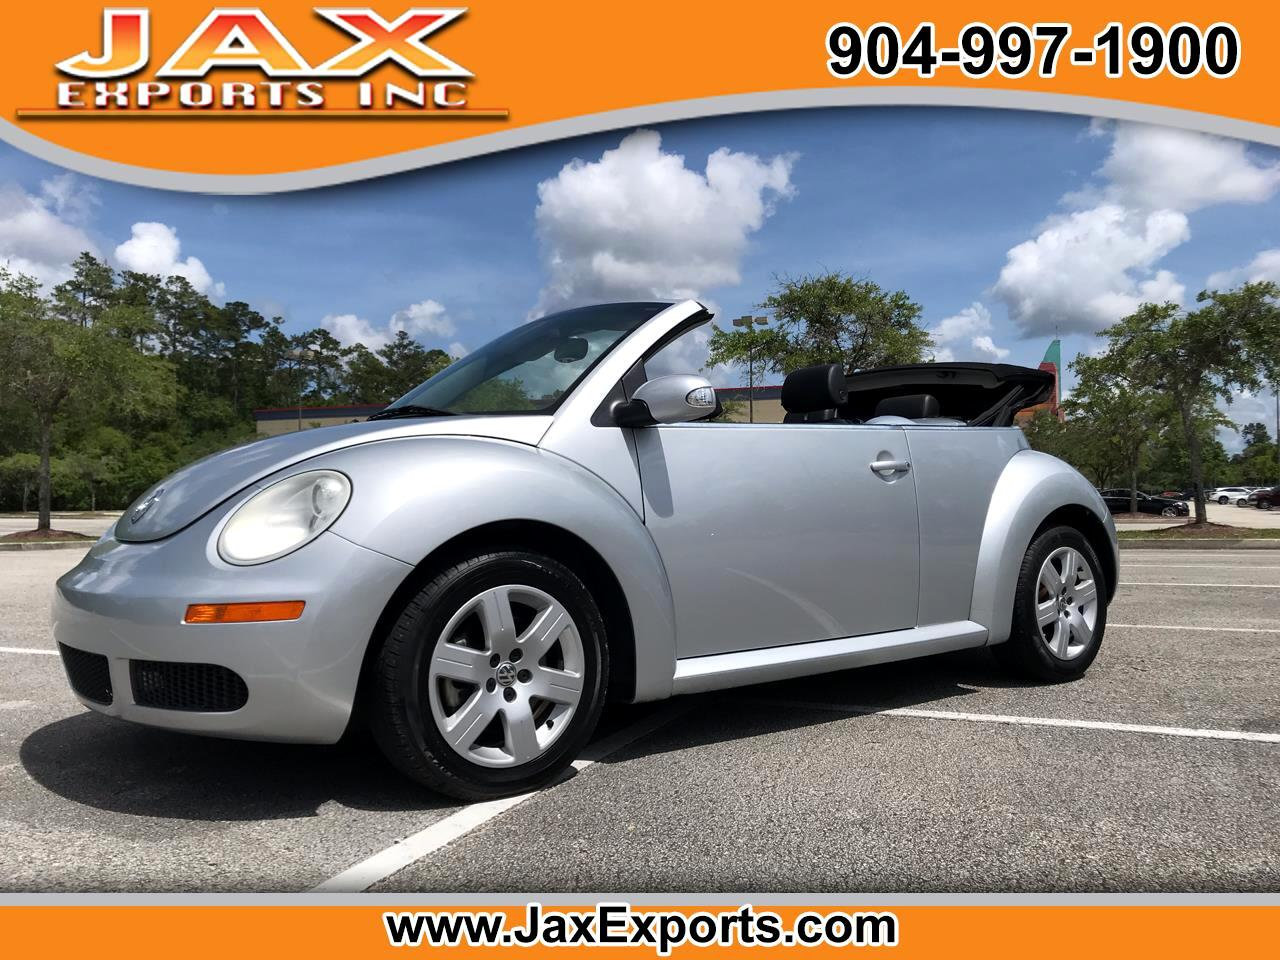 2007 Volkswagen New Beetle Convertible 2dr Manual